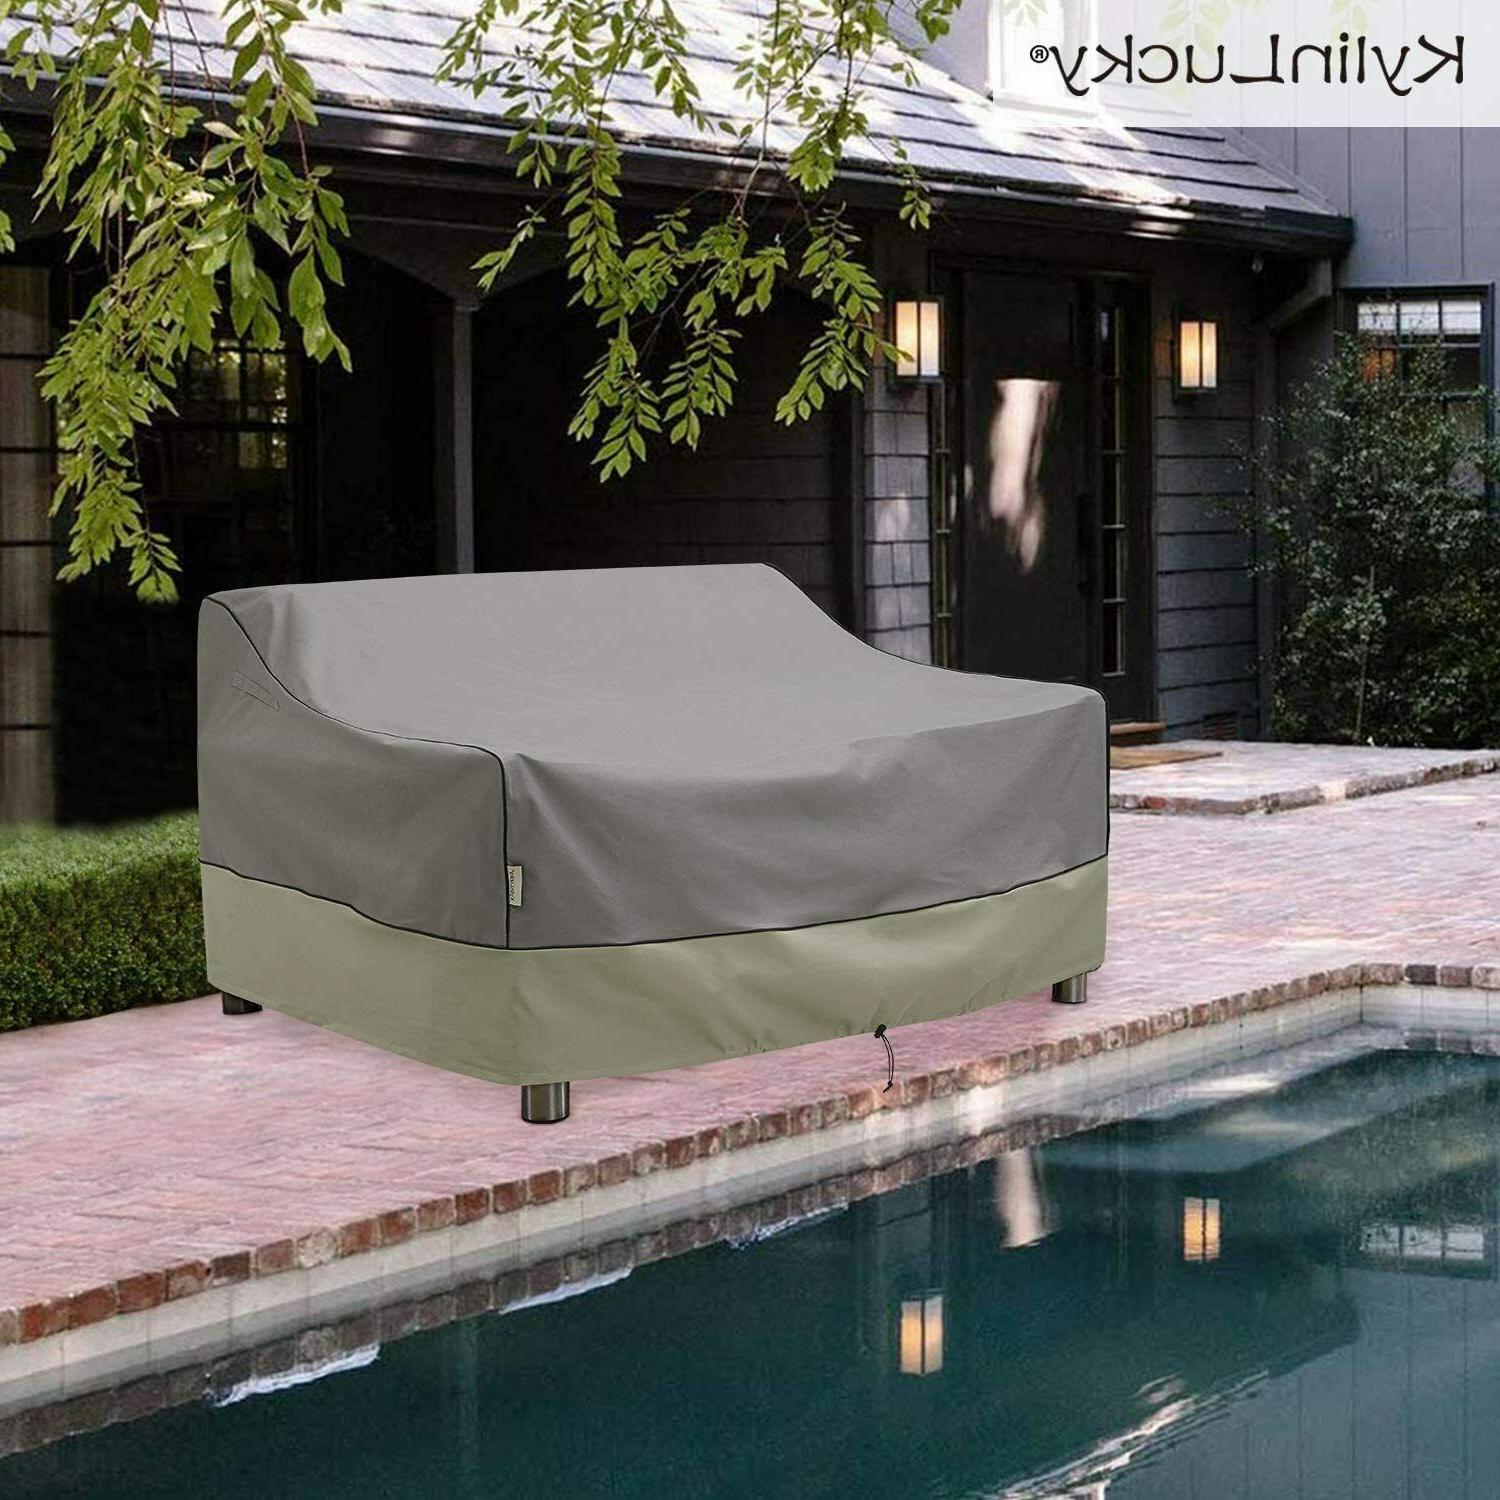 Kylinlucky Waterproof, Patio Loveseat Cover Fits Up